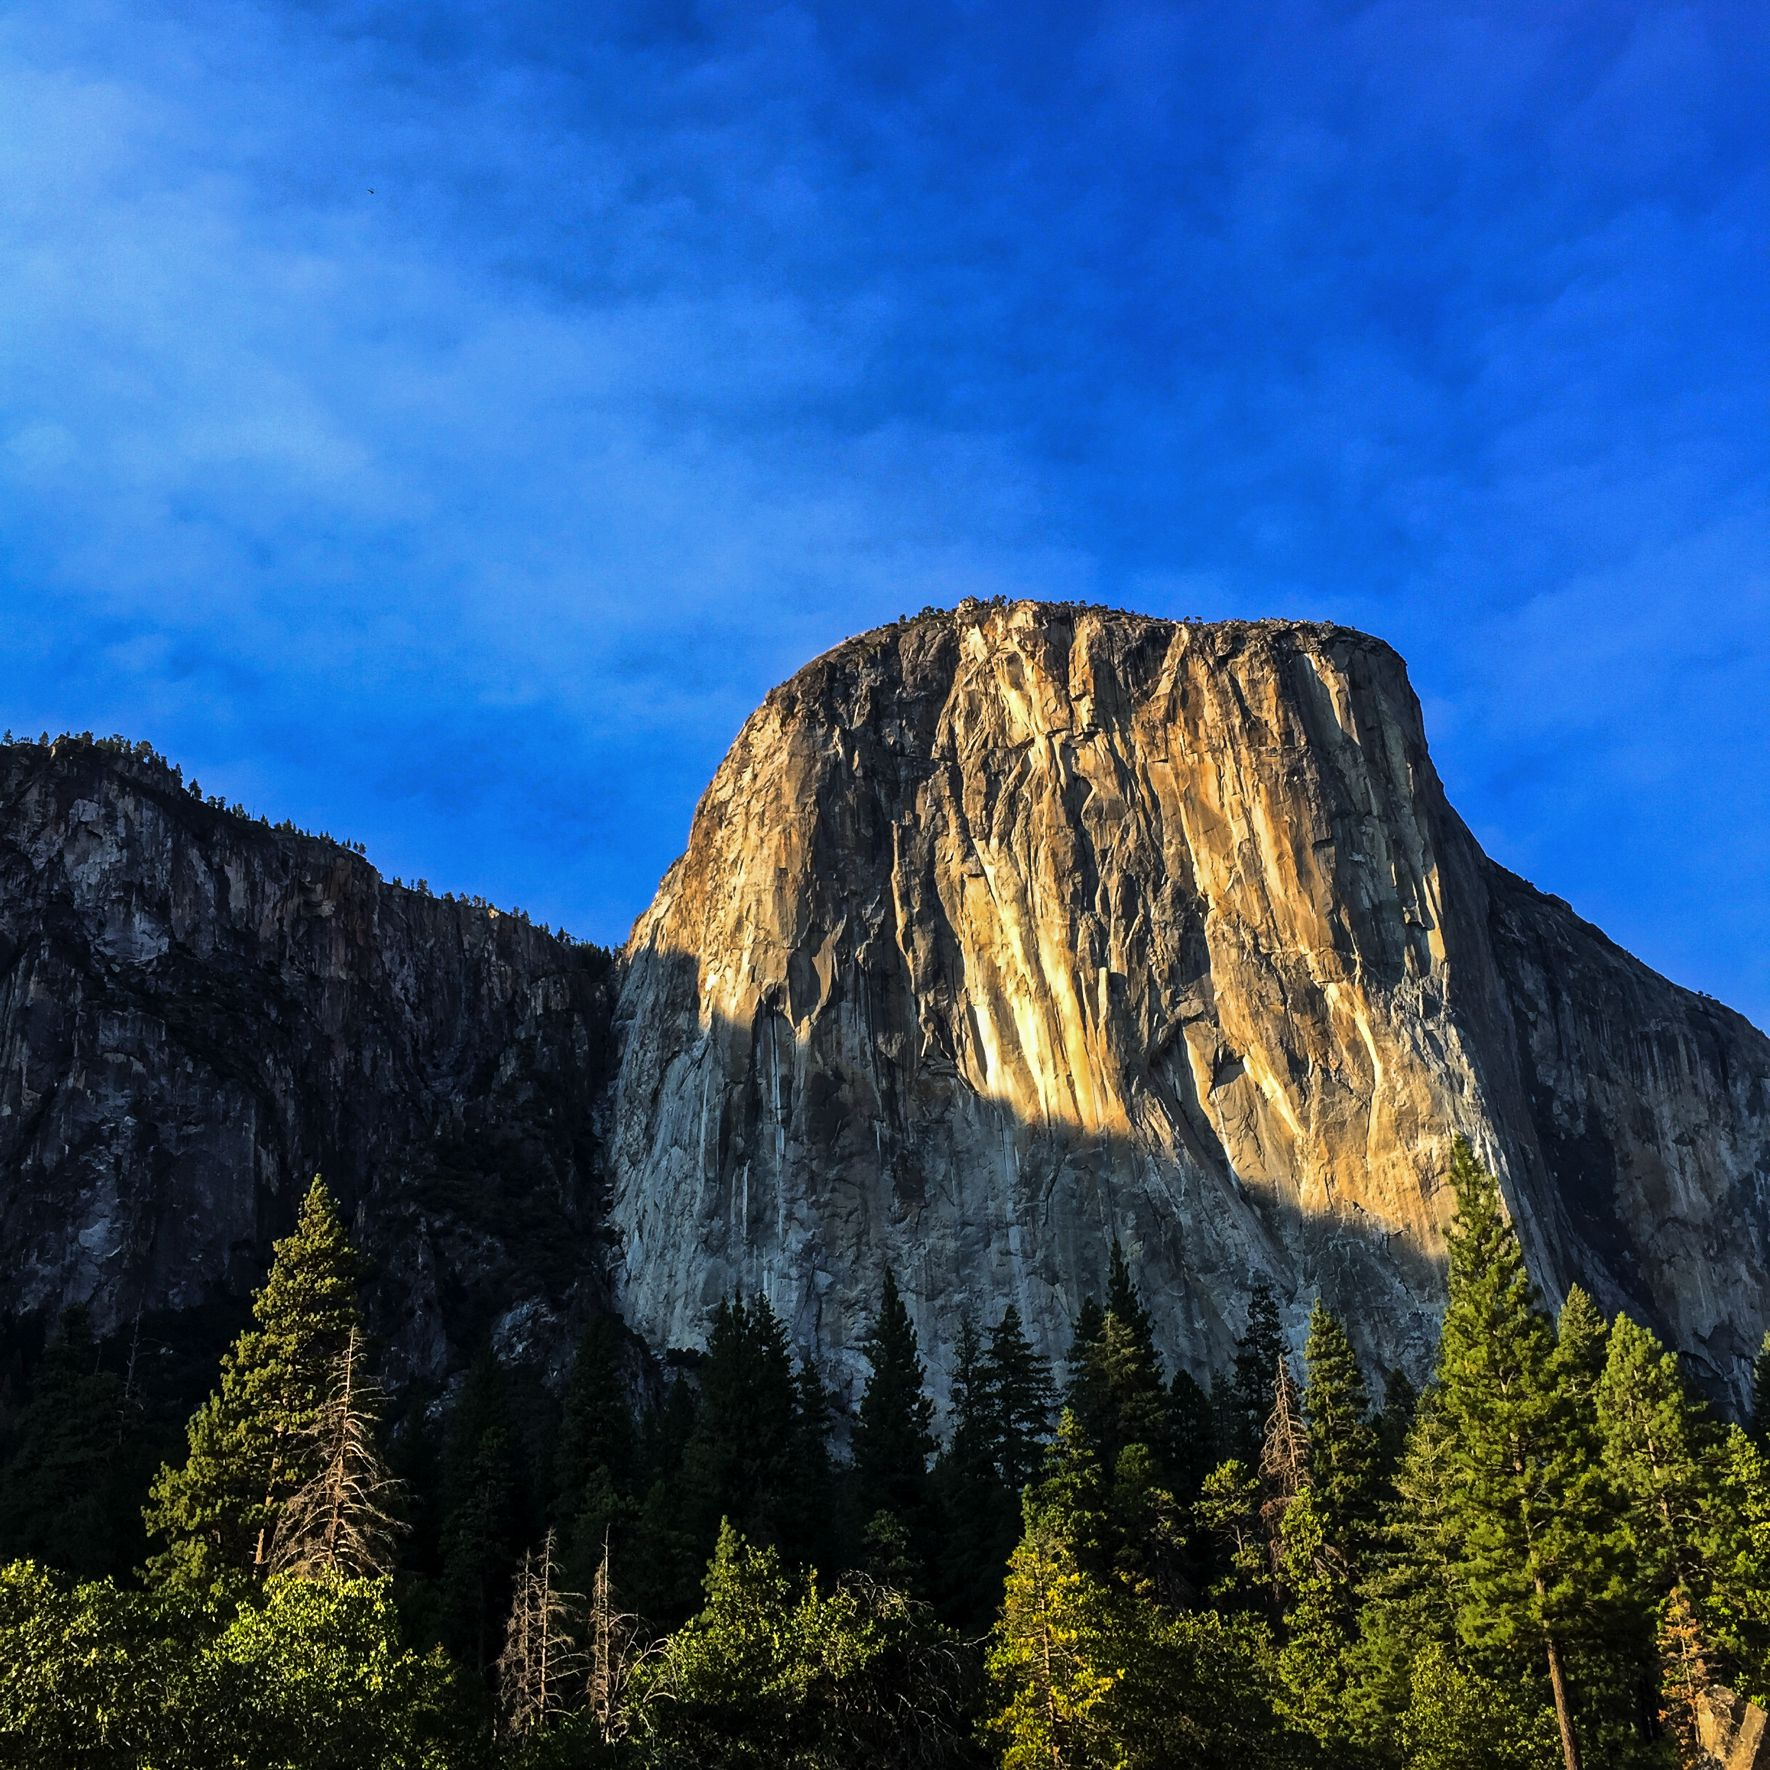 Steen-Jones-Artist-Travel-USA-Yosemite-11.jpg